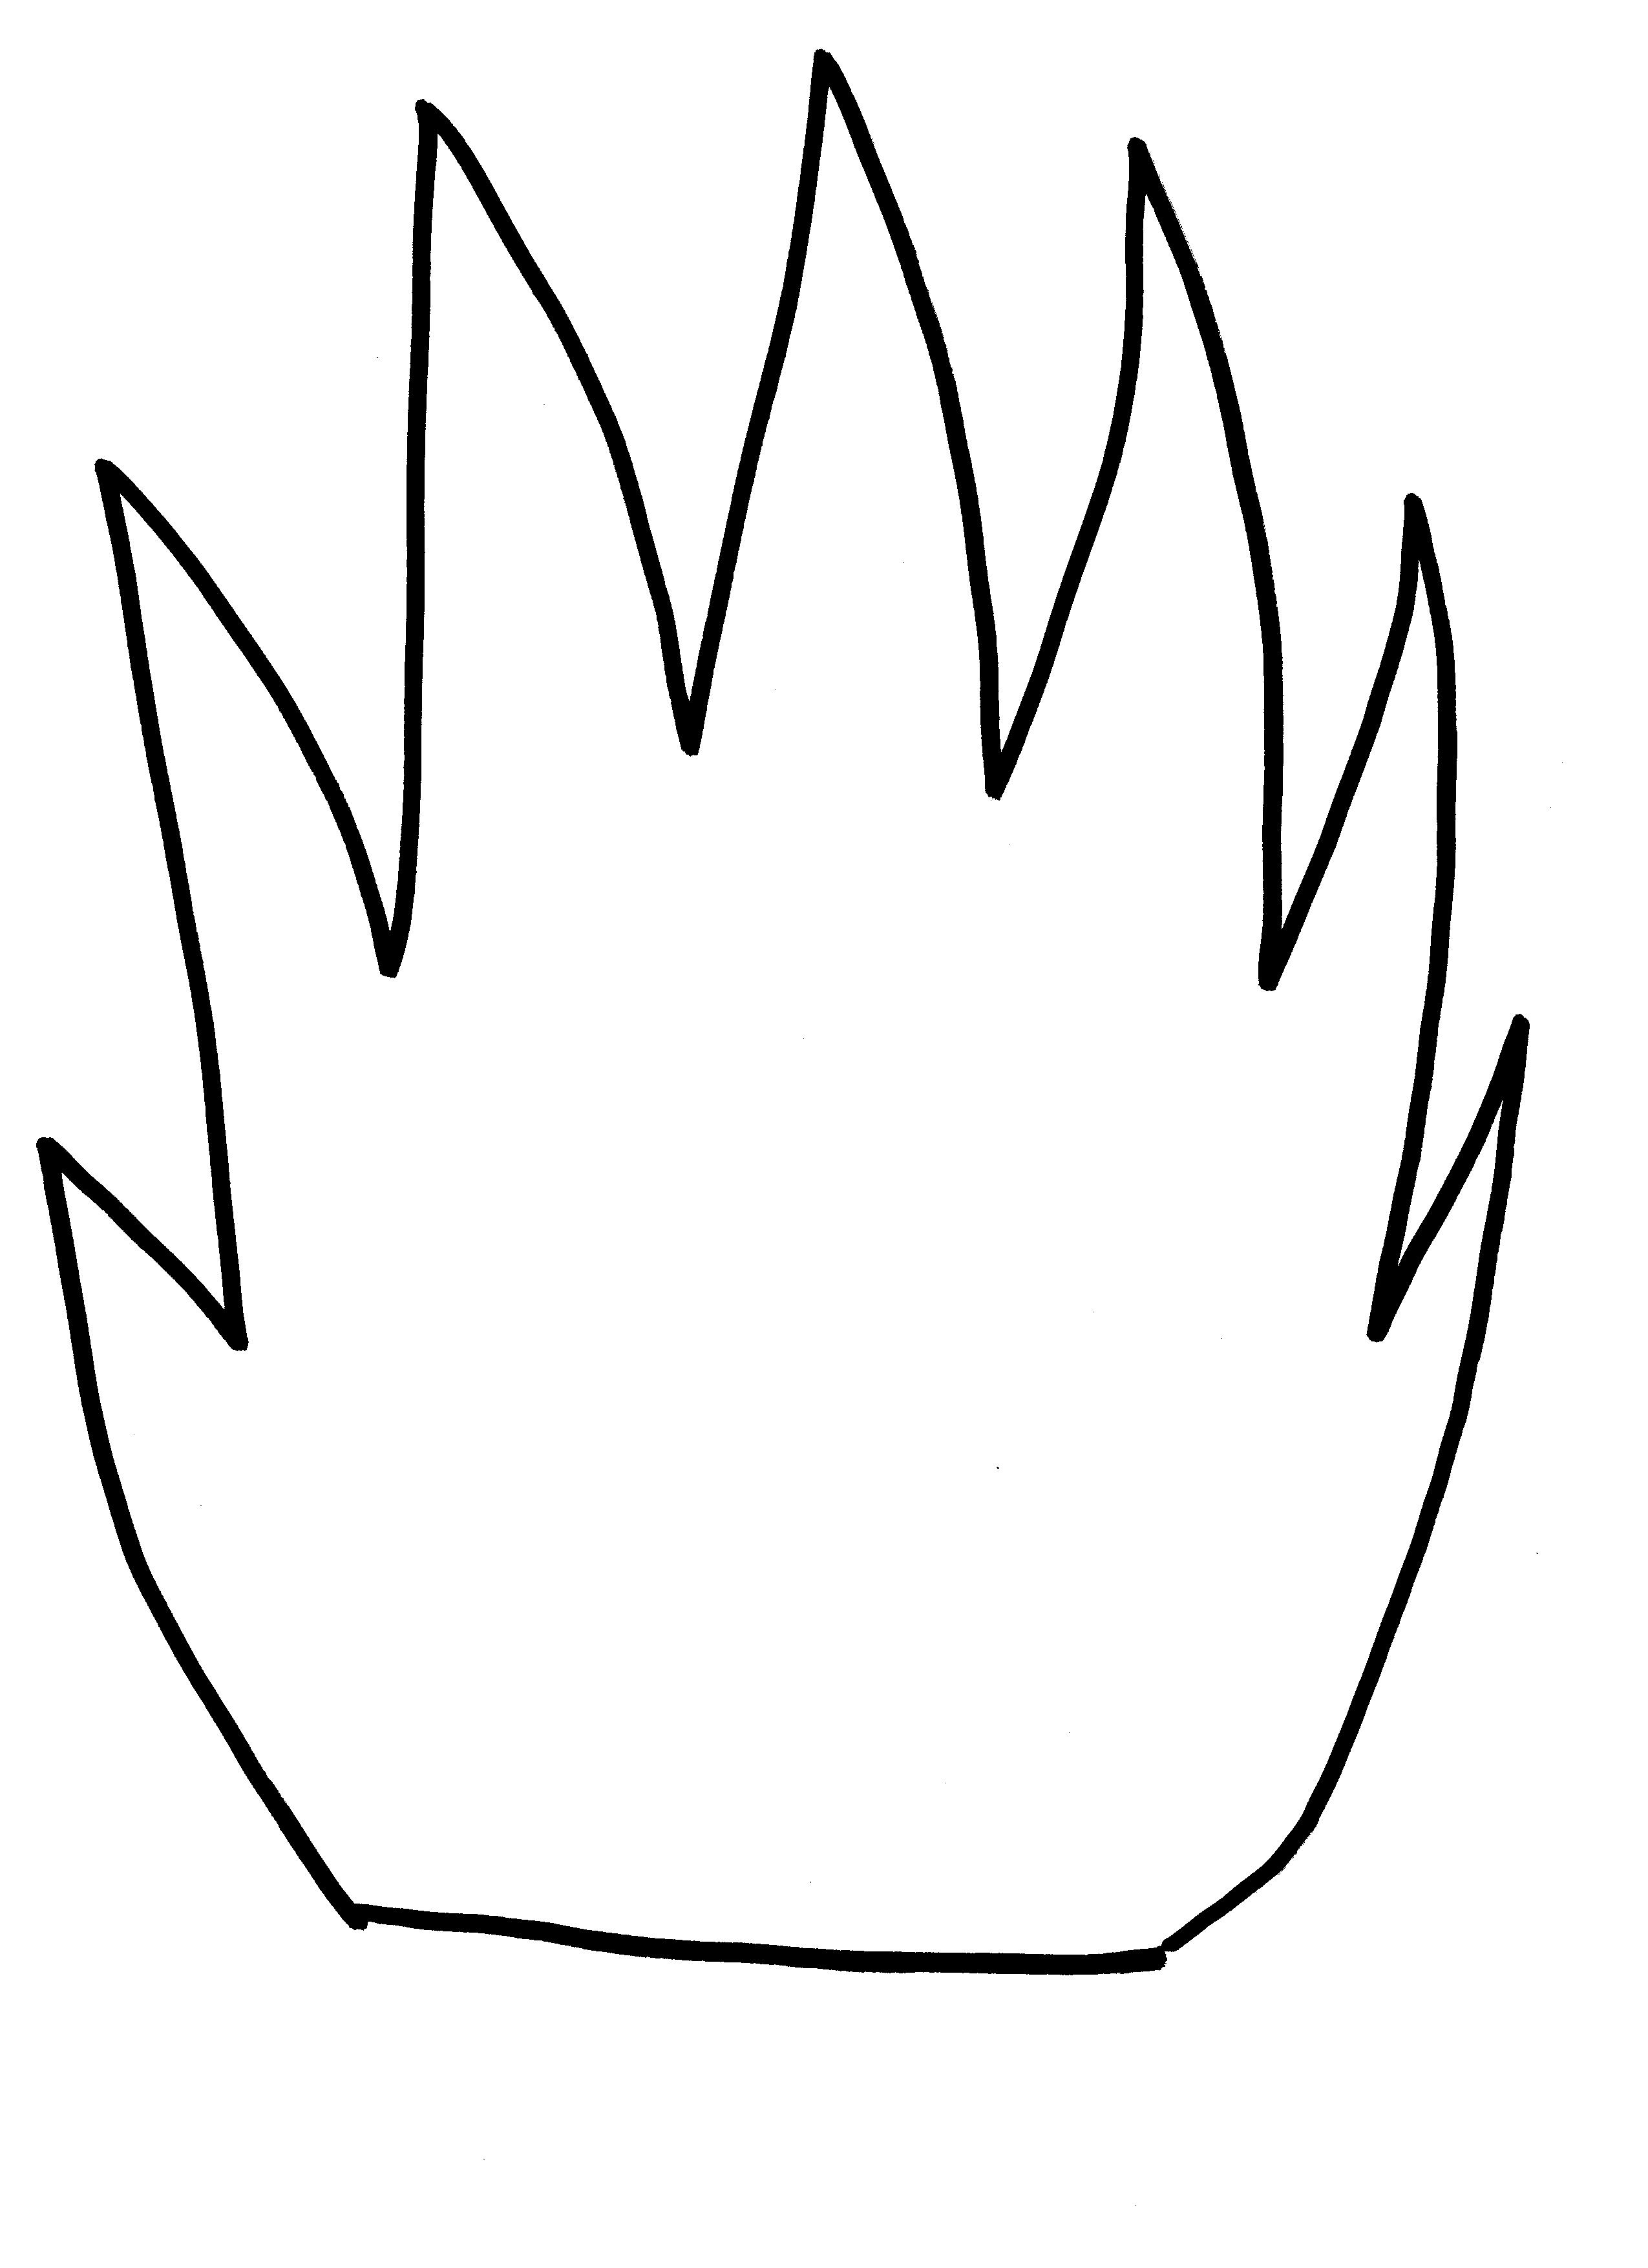 Fire Safety Finger Paint Flame Craft And Song From Kiboomu